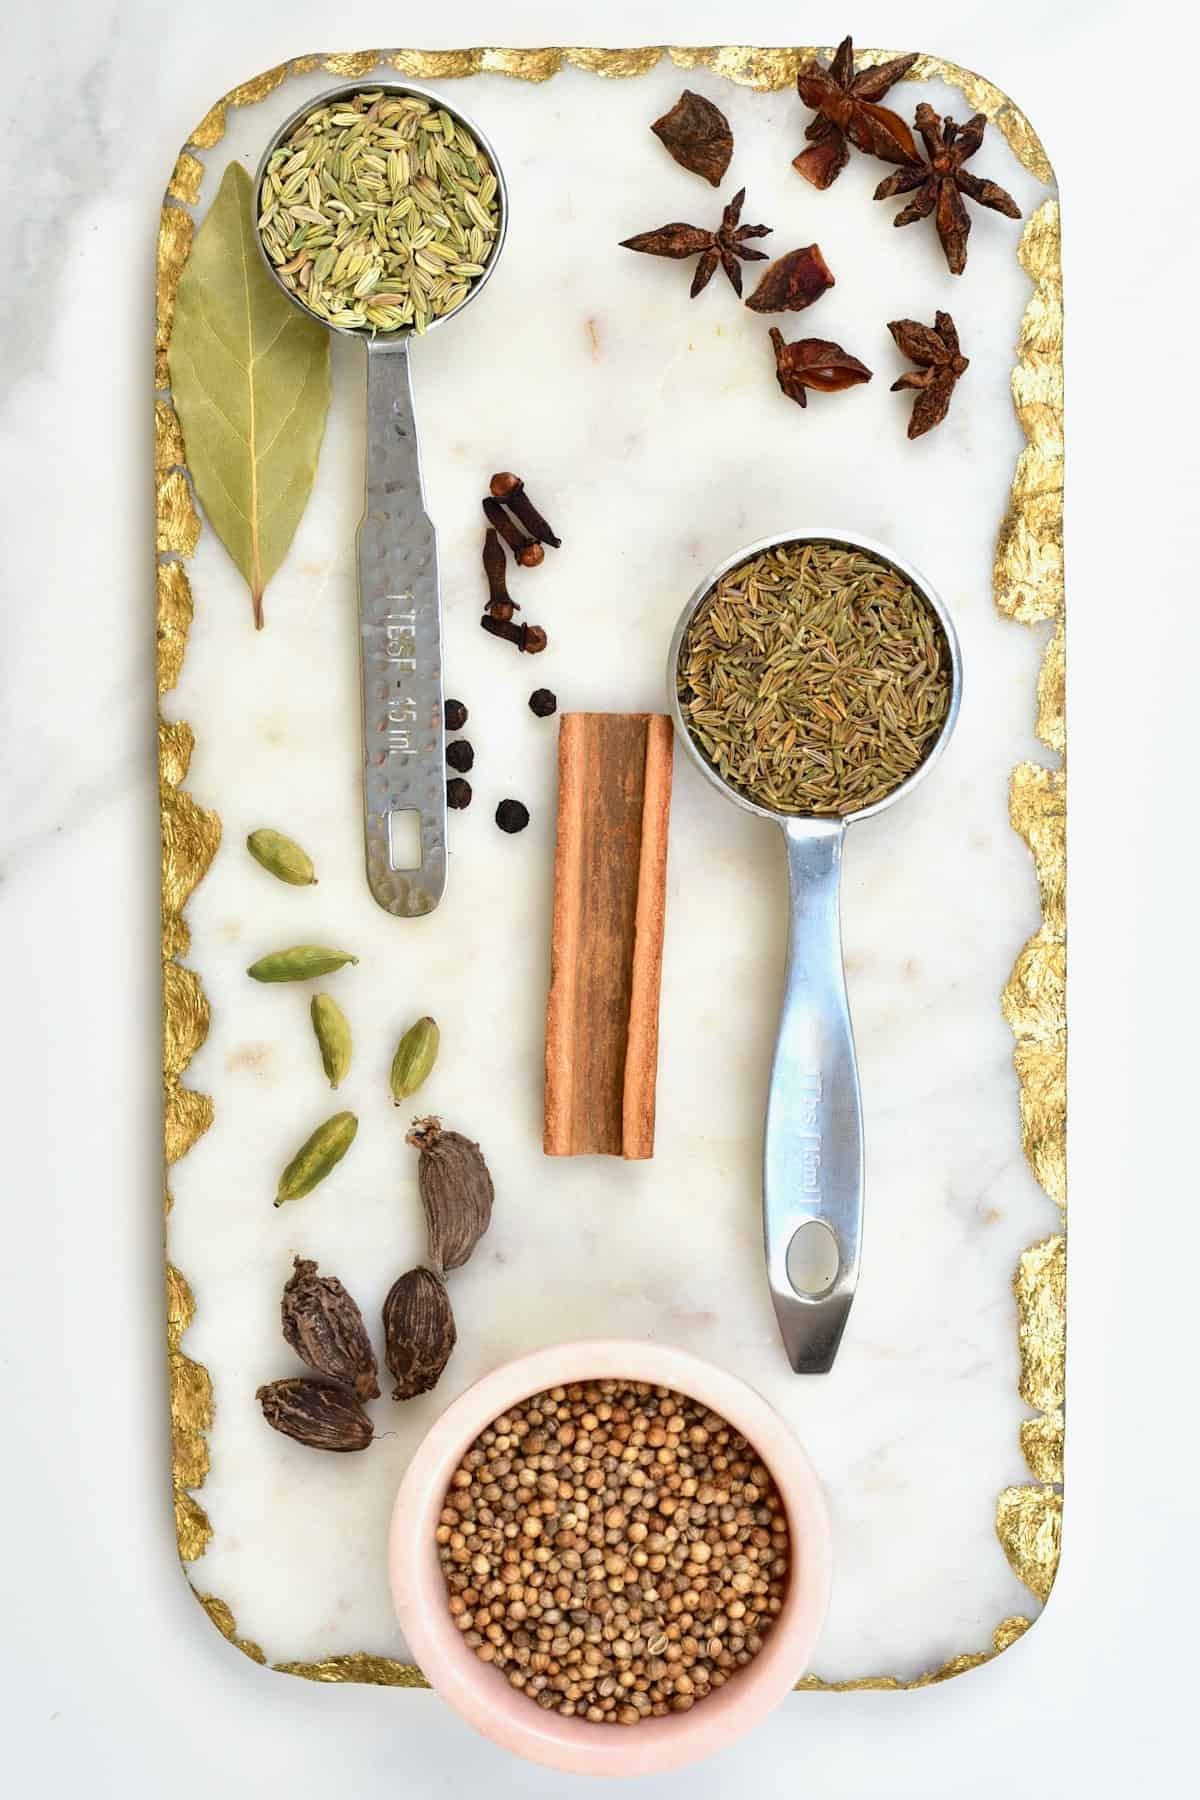 Spices on a board